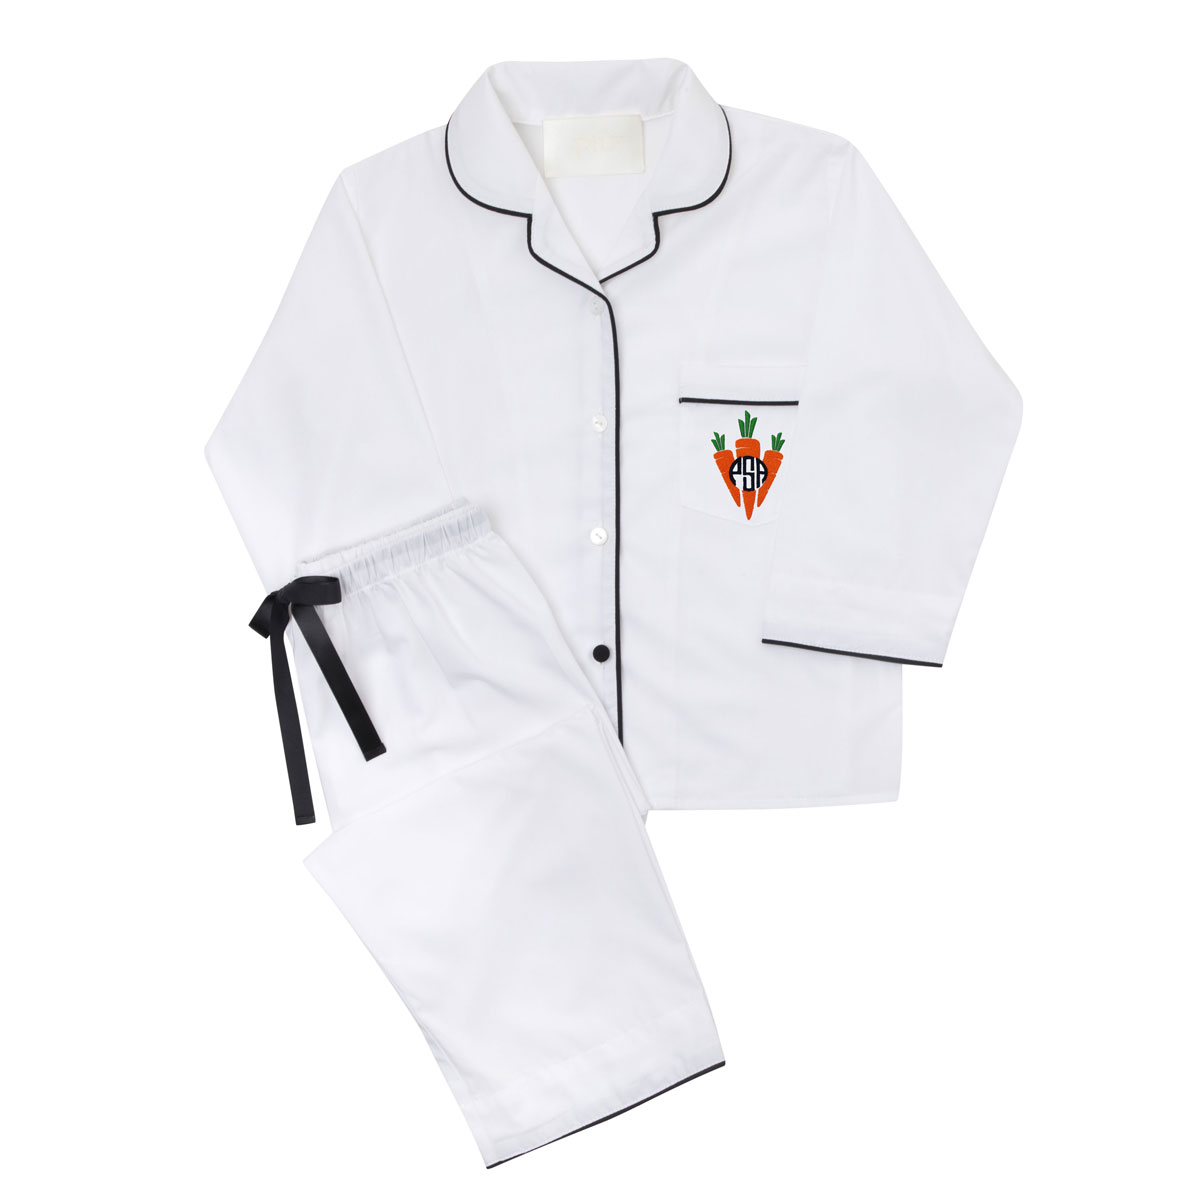 Piu Men's Bamboo Pajama Set in White with Black Piping and Carrot Pocket Monogram